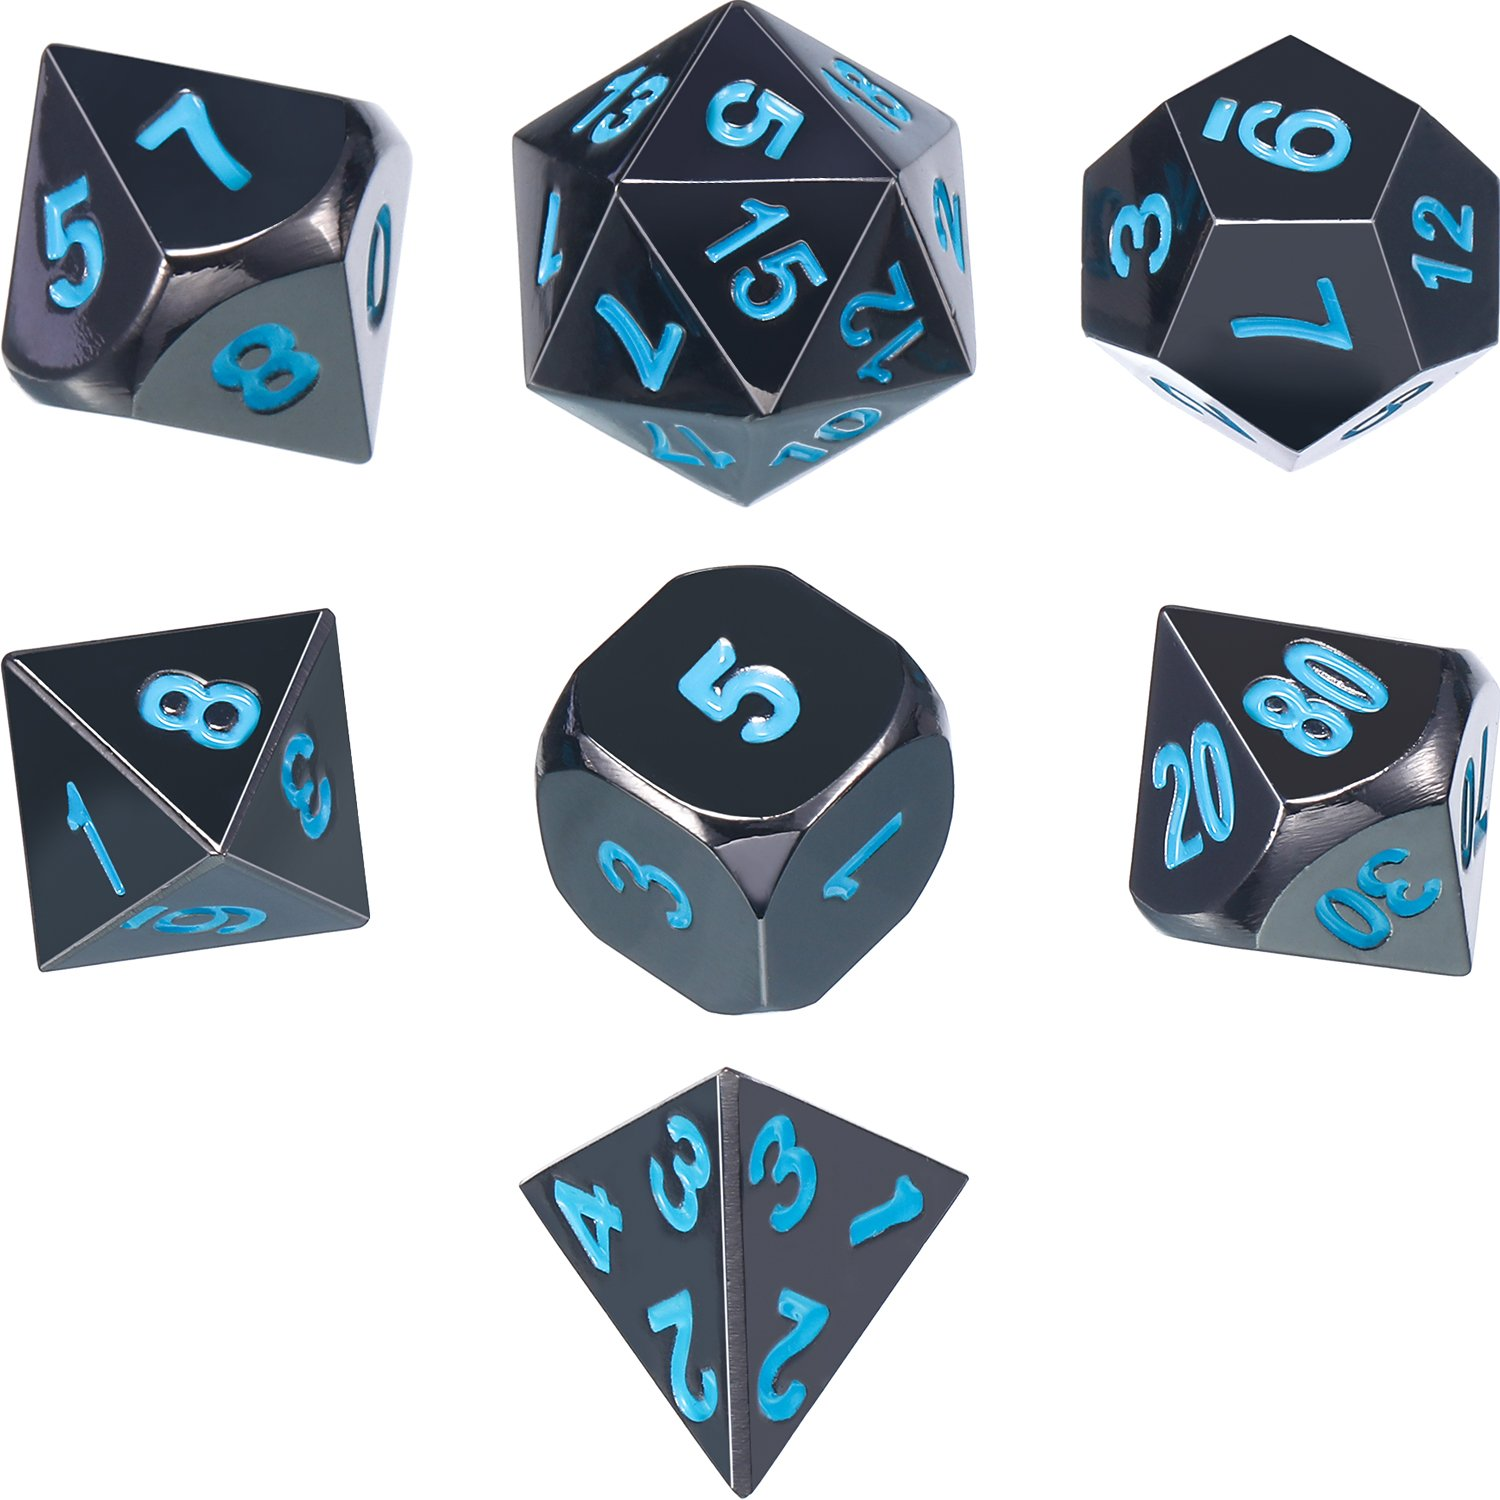 TecUnite 7 Die Metal Polyhedral Dice Set DND Role Playing Game Dice Set with Storage Bag for RPG Dungeons and Dragons D&D Math Teaching (Shiny Black and Blue) by TecUnite